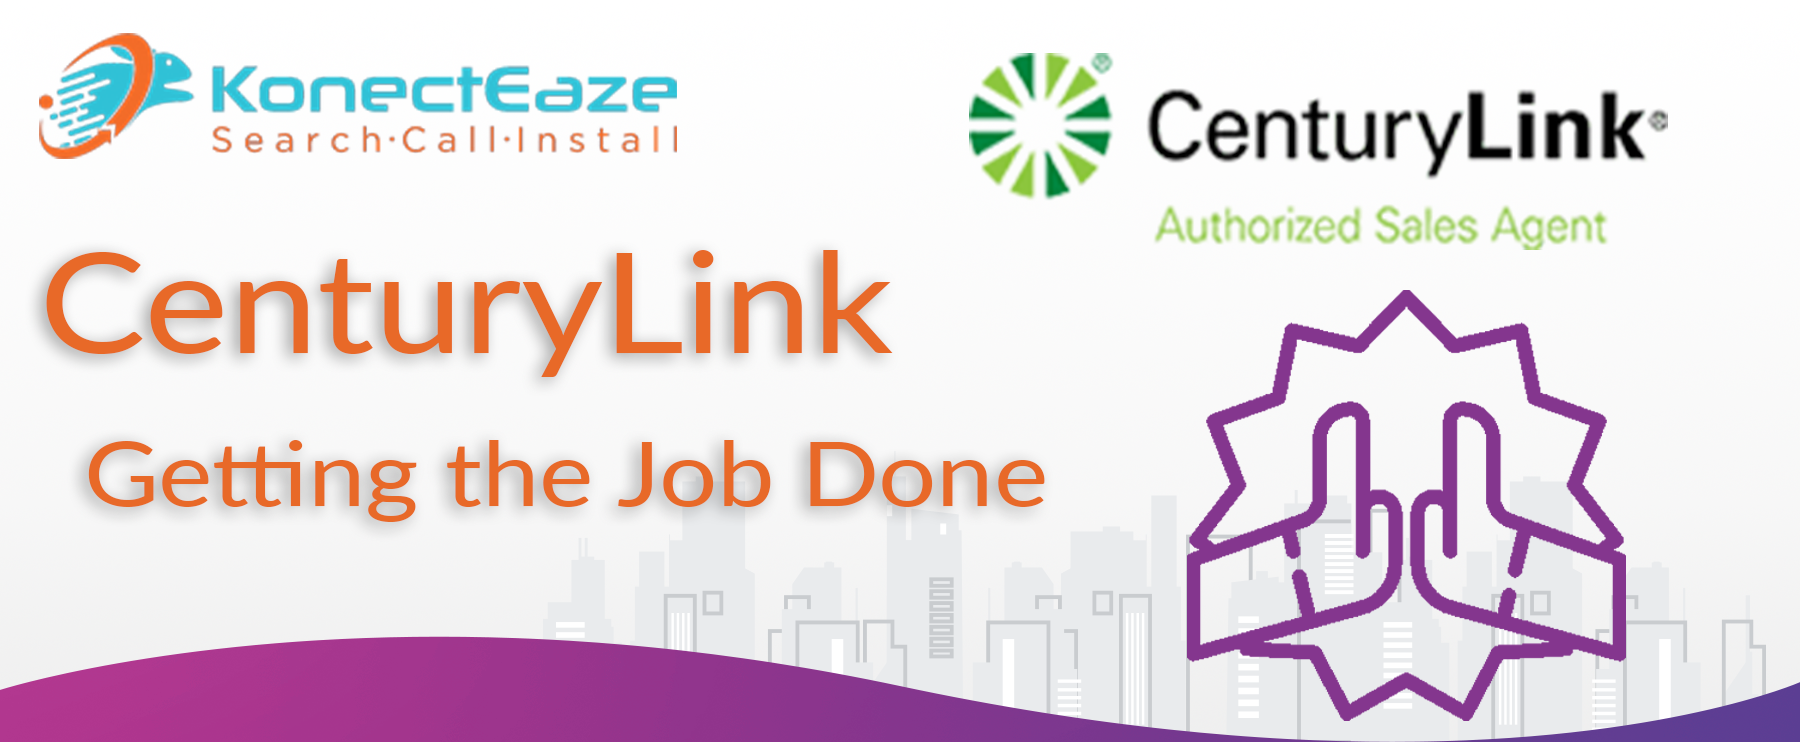 CenturyLink; Getting the Job Done